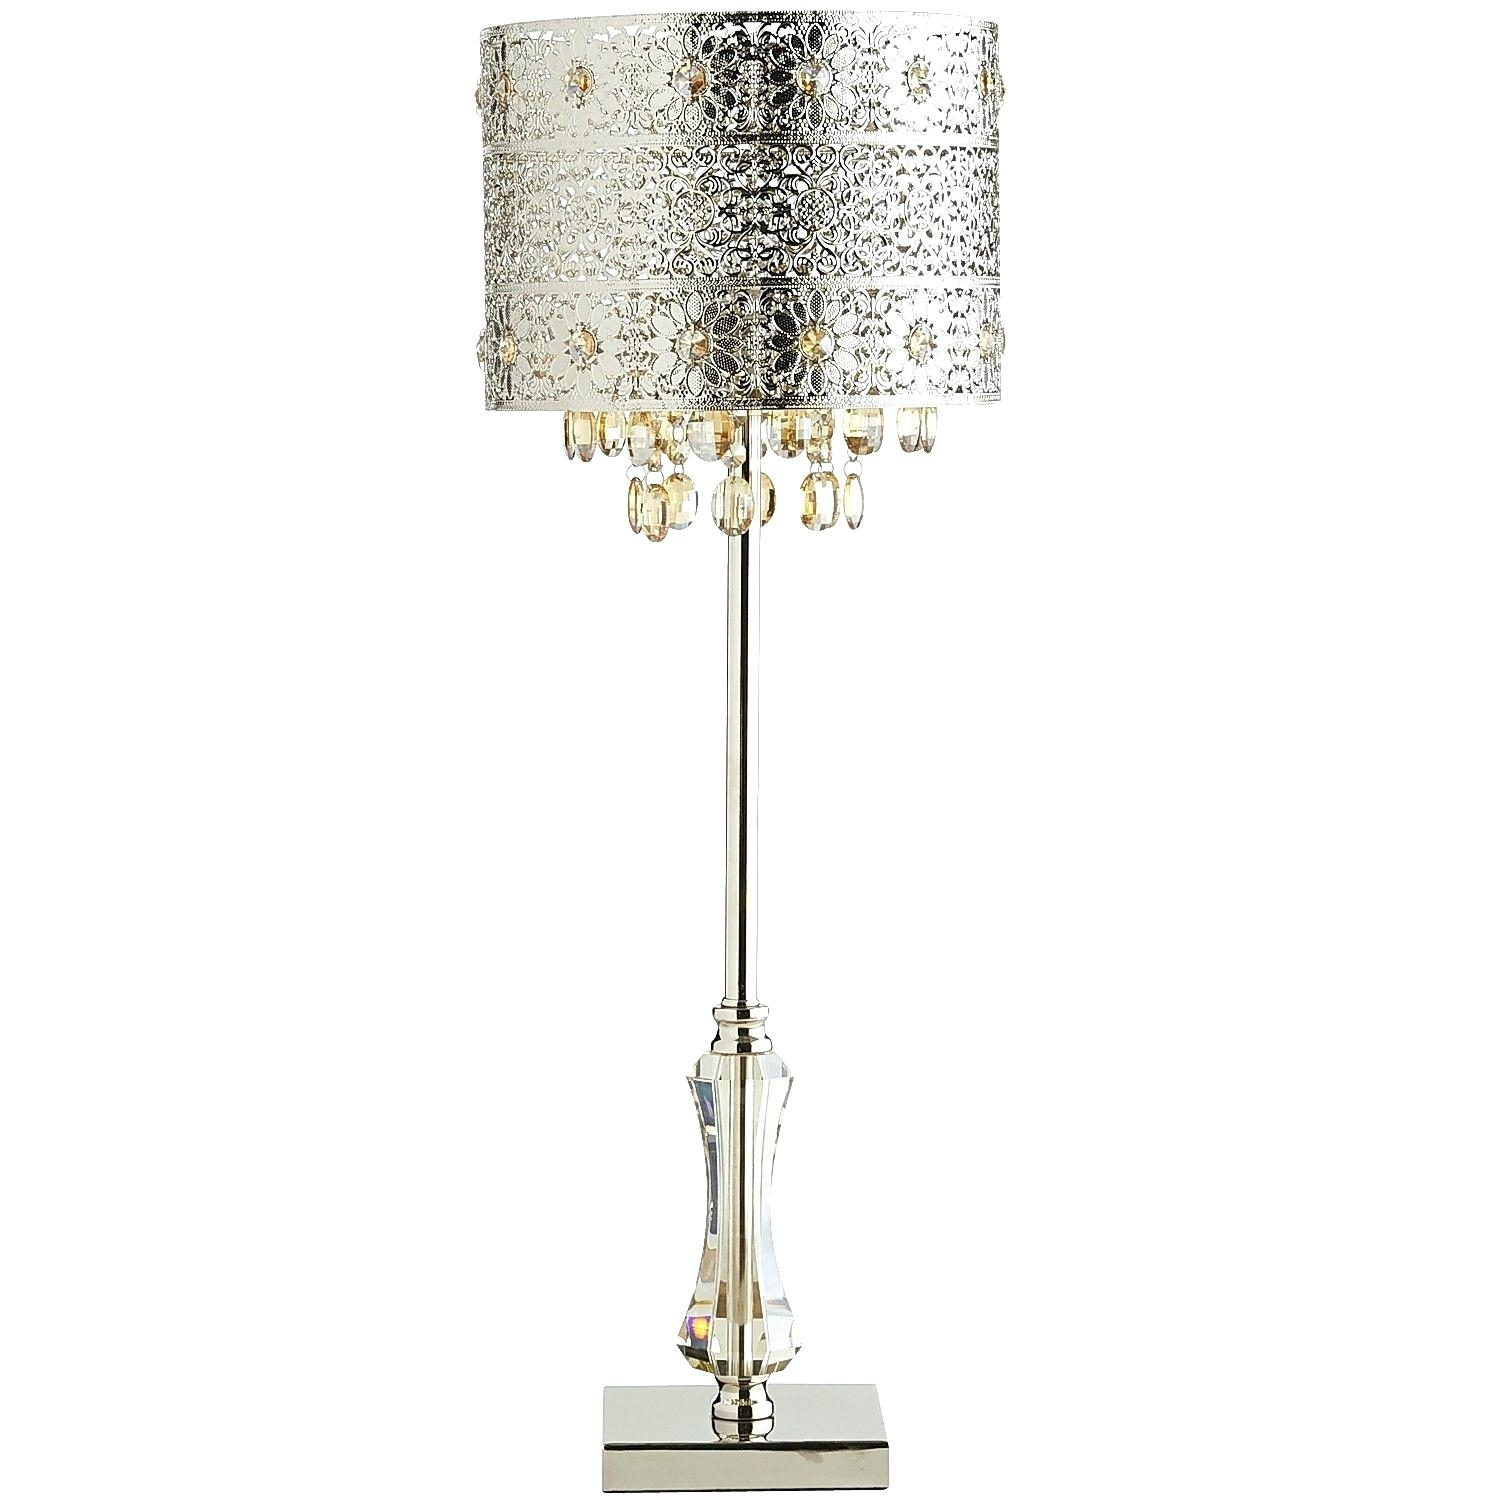 Foyer Chandelier Size Baccarat Crystal Table Lamp Baccarat Crystal With Crystal Table Chandeliers (Image 10 of 15)